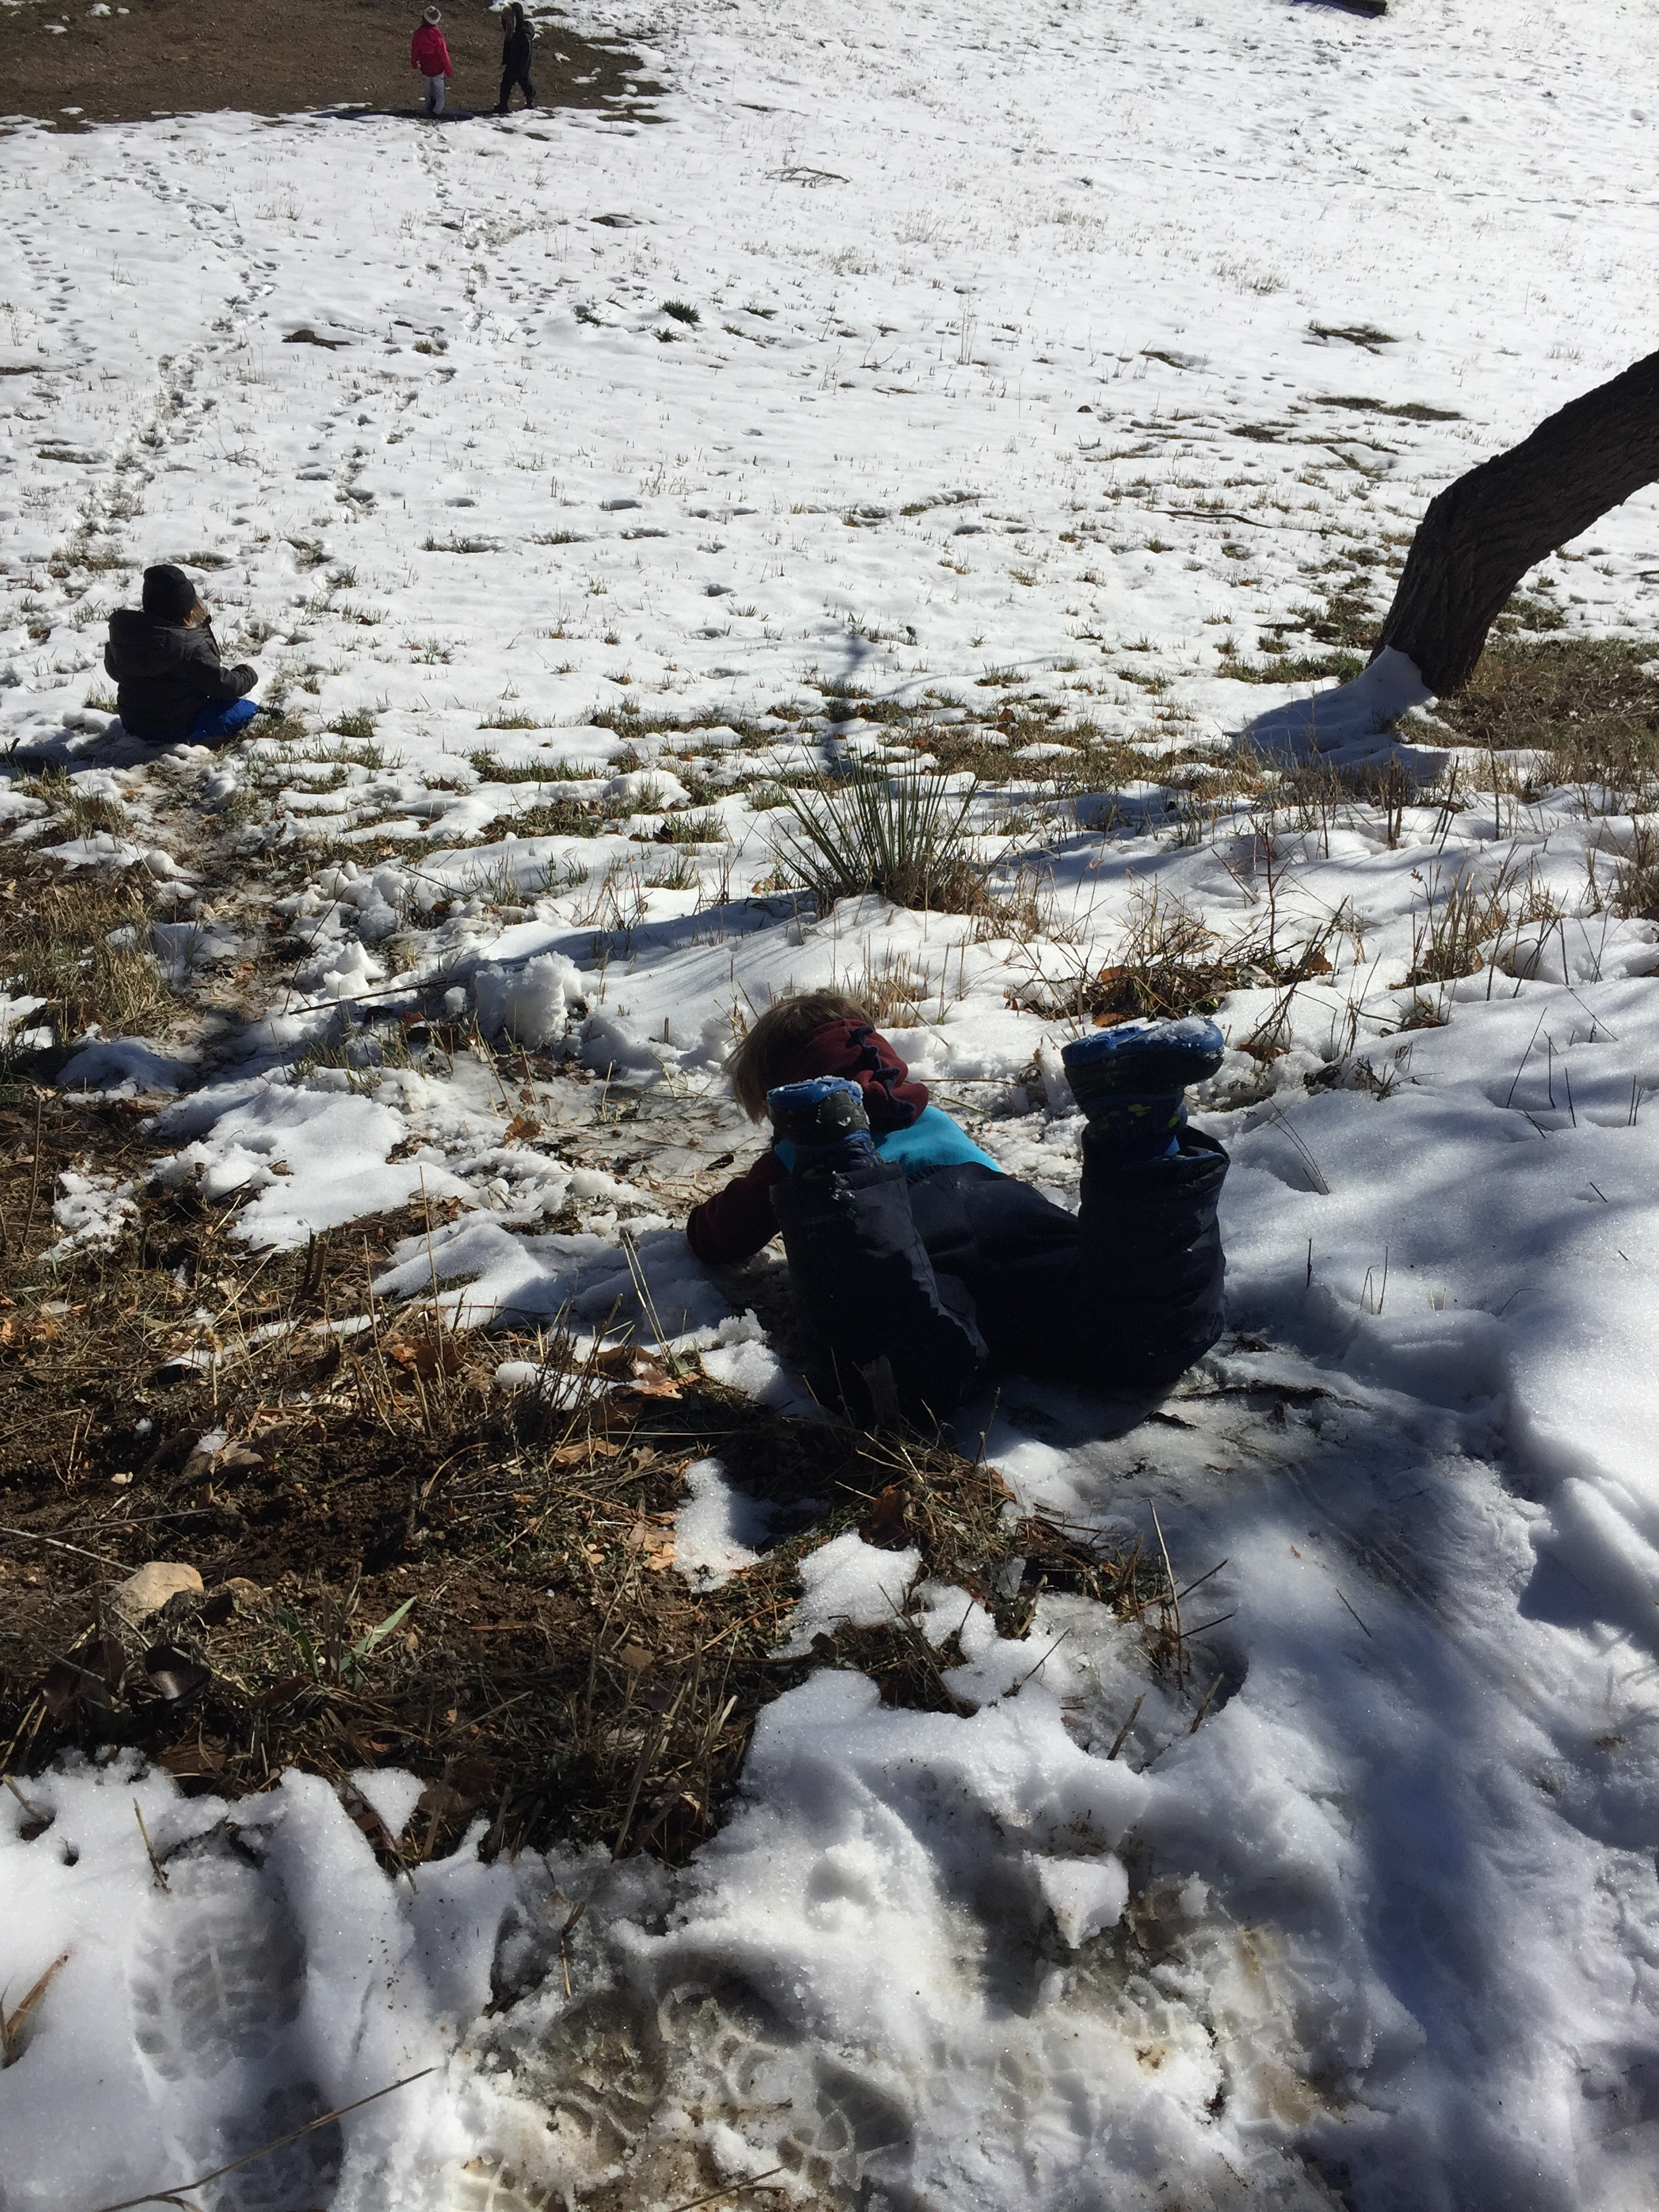 The children laughed and laughed as they slid like penguins. Most of the children spend a good portion of their time pretending to be various animals.